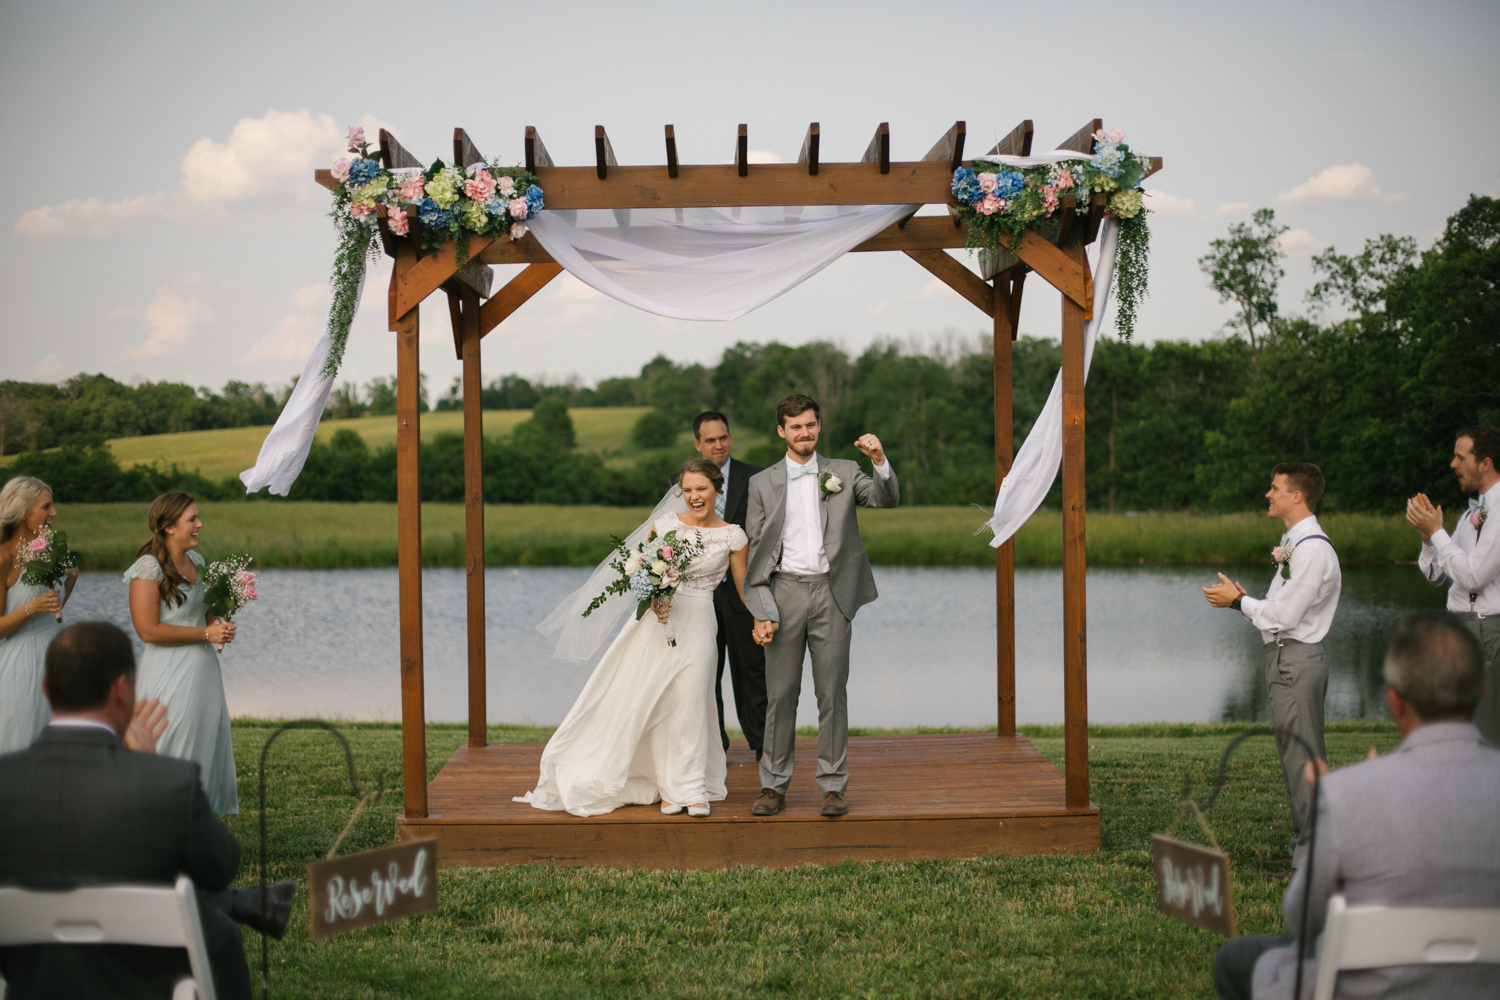 2019.06.01_CraskWedding_Starks-113.jpg